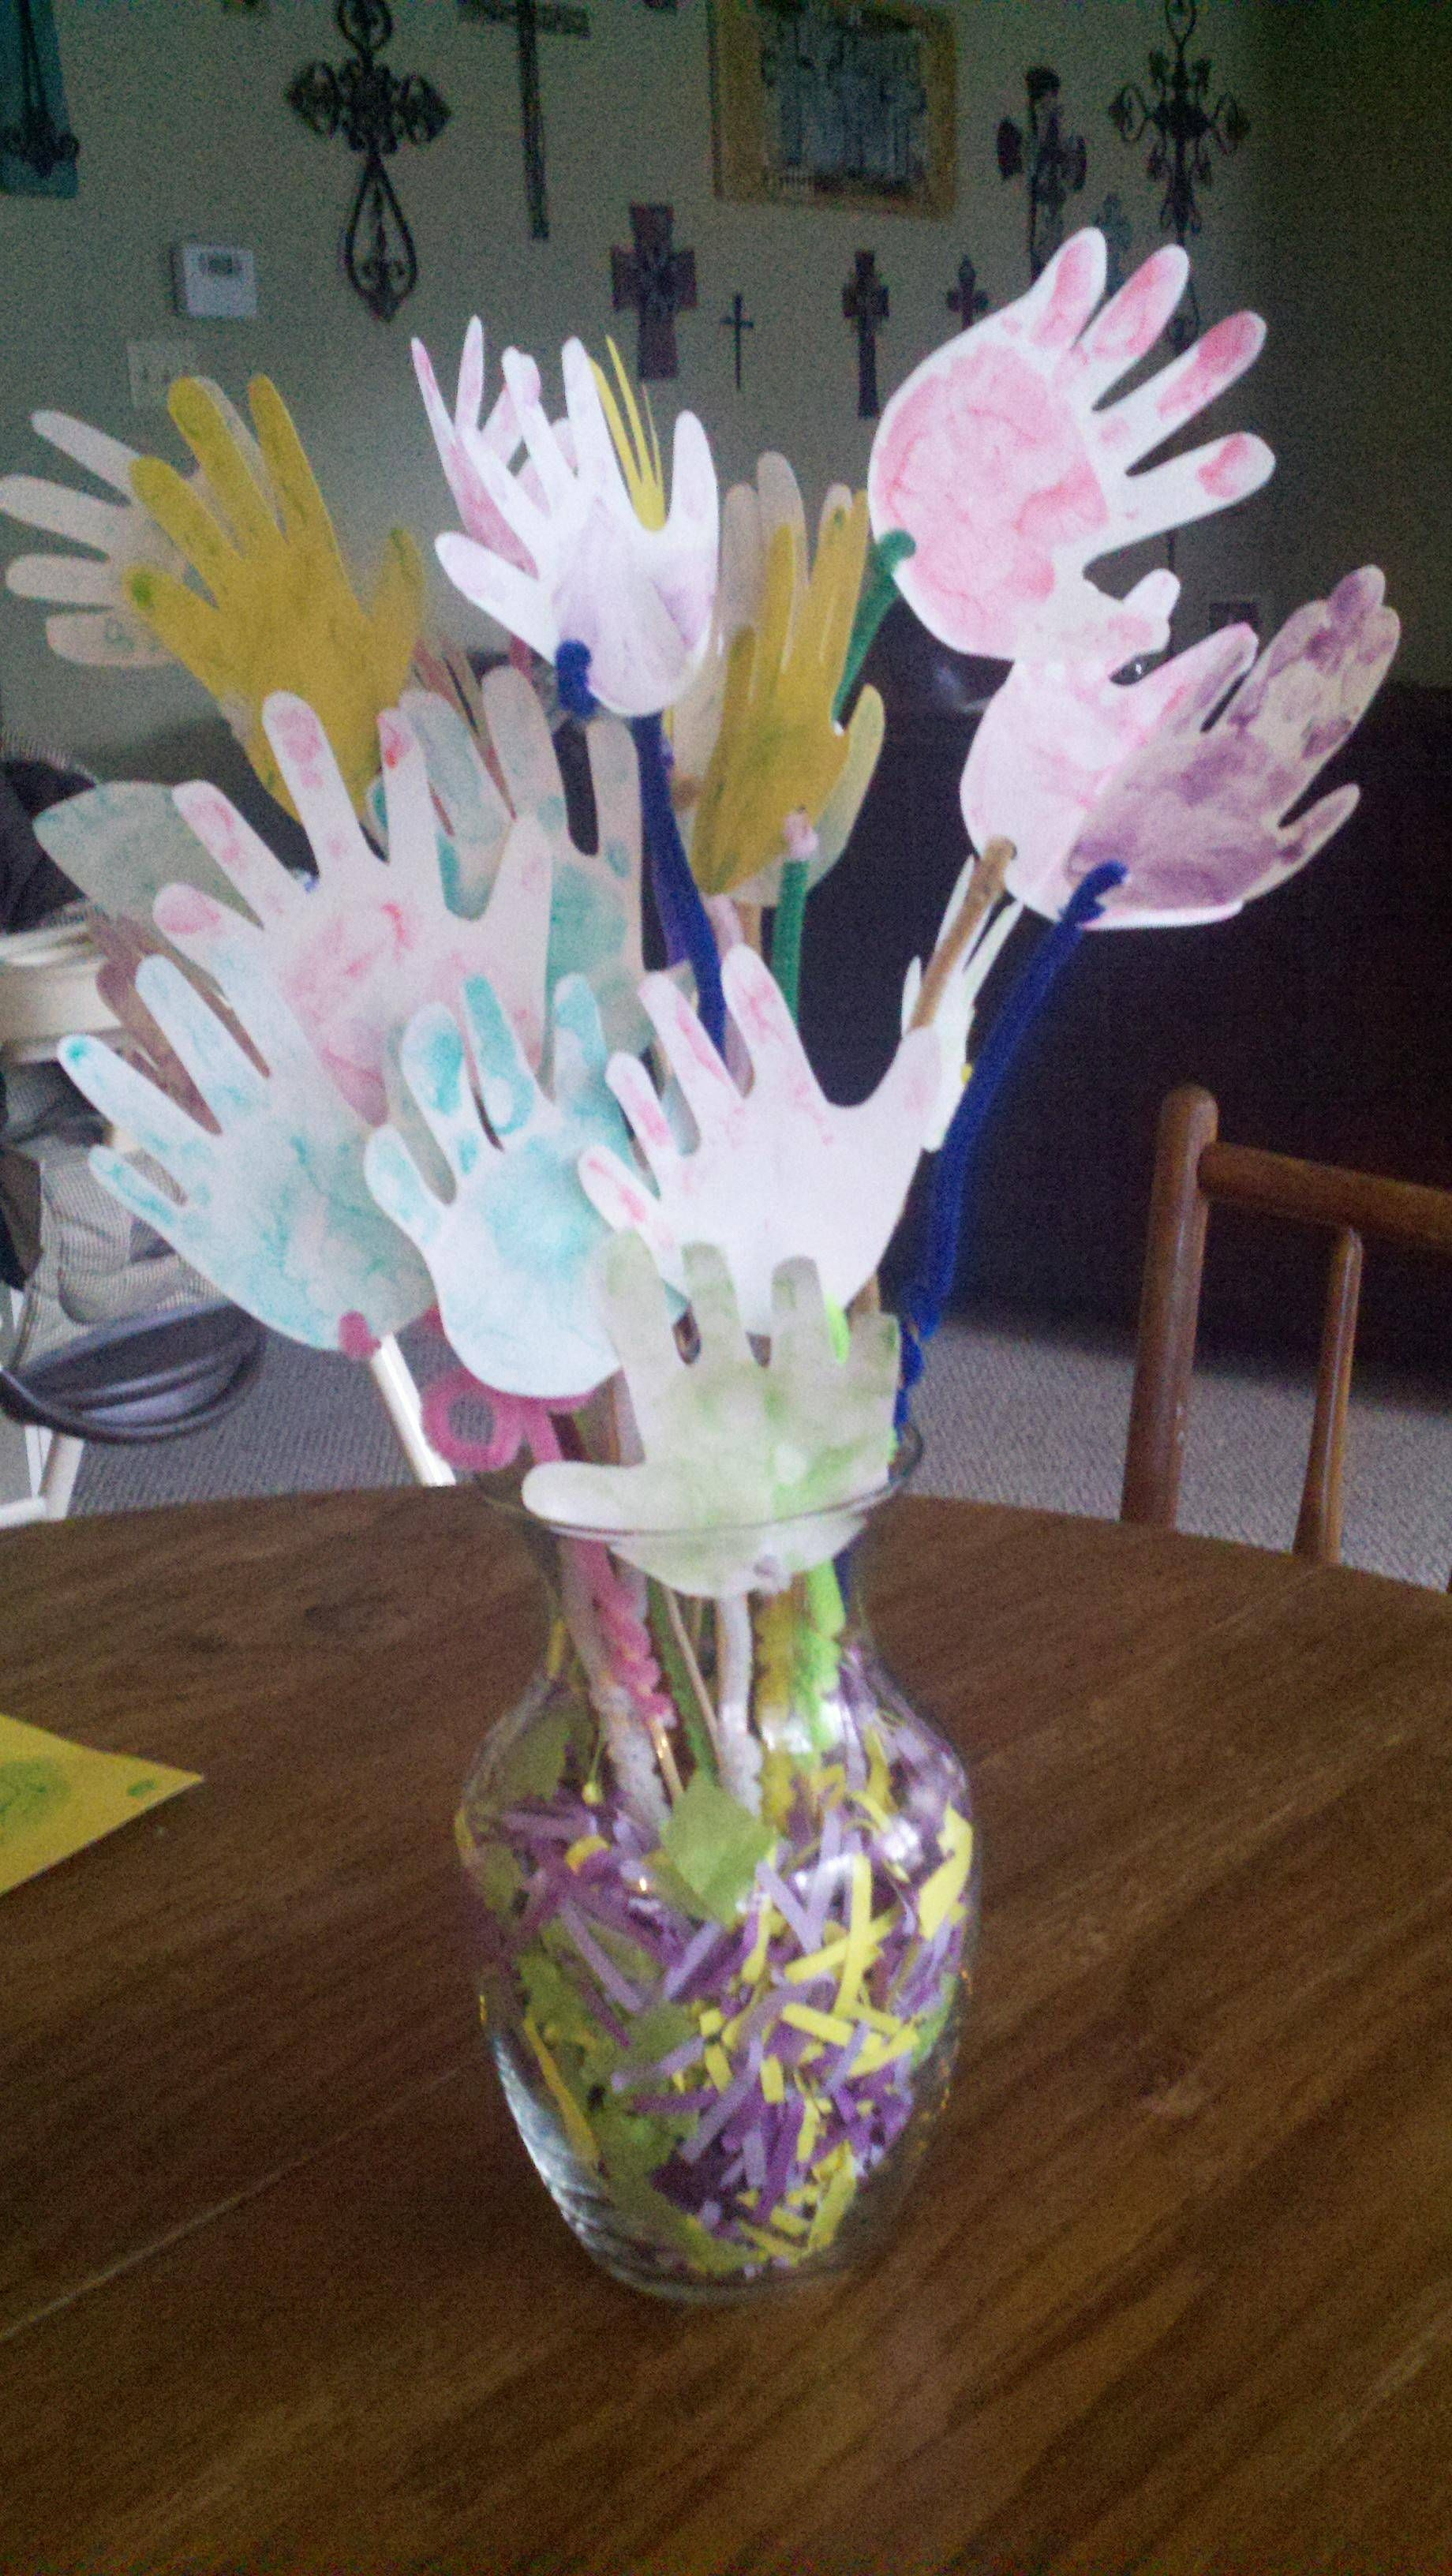 Get well soon bouquet for mimi made from the grandkids handprints get well soon bouquet for mimi made from the grandkids handprints dhlflorist Images